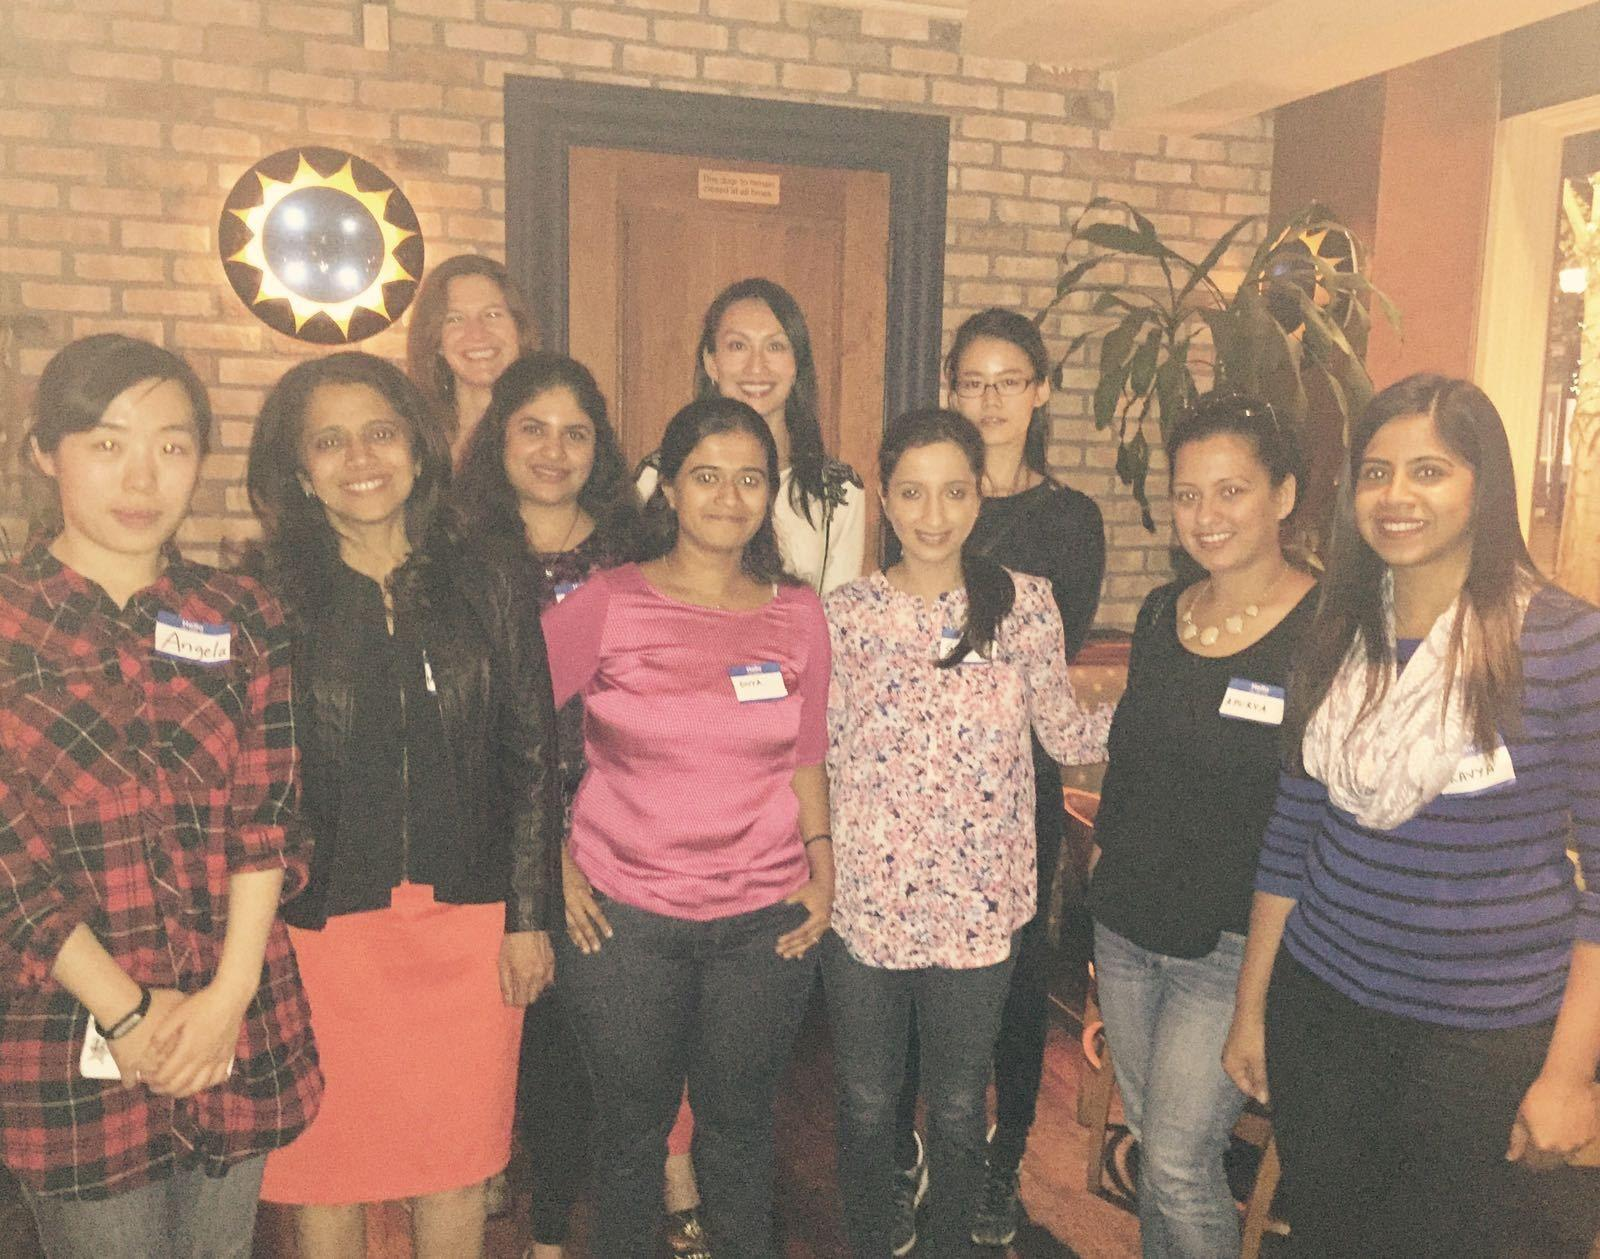 Bay Area Women In Product Meetup